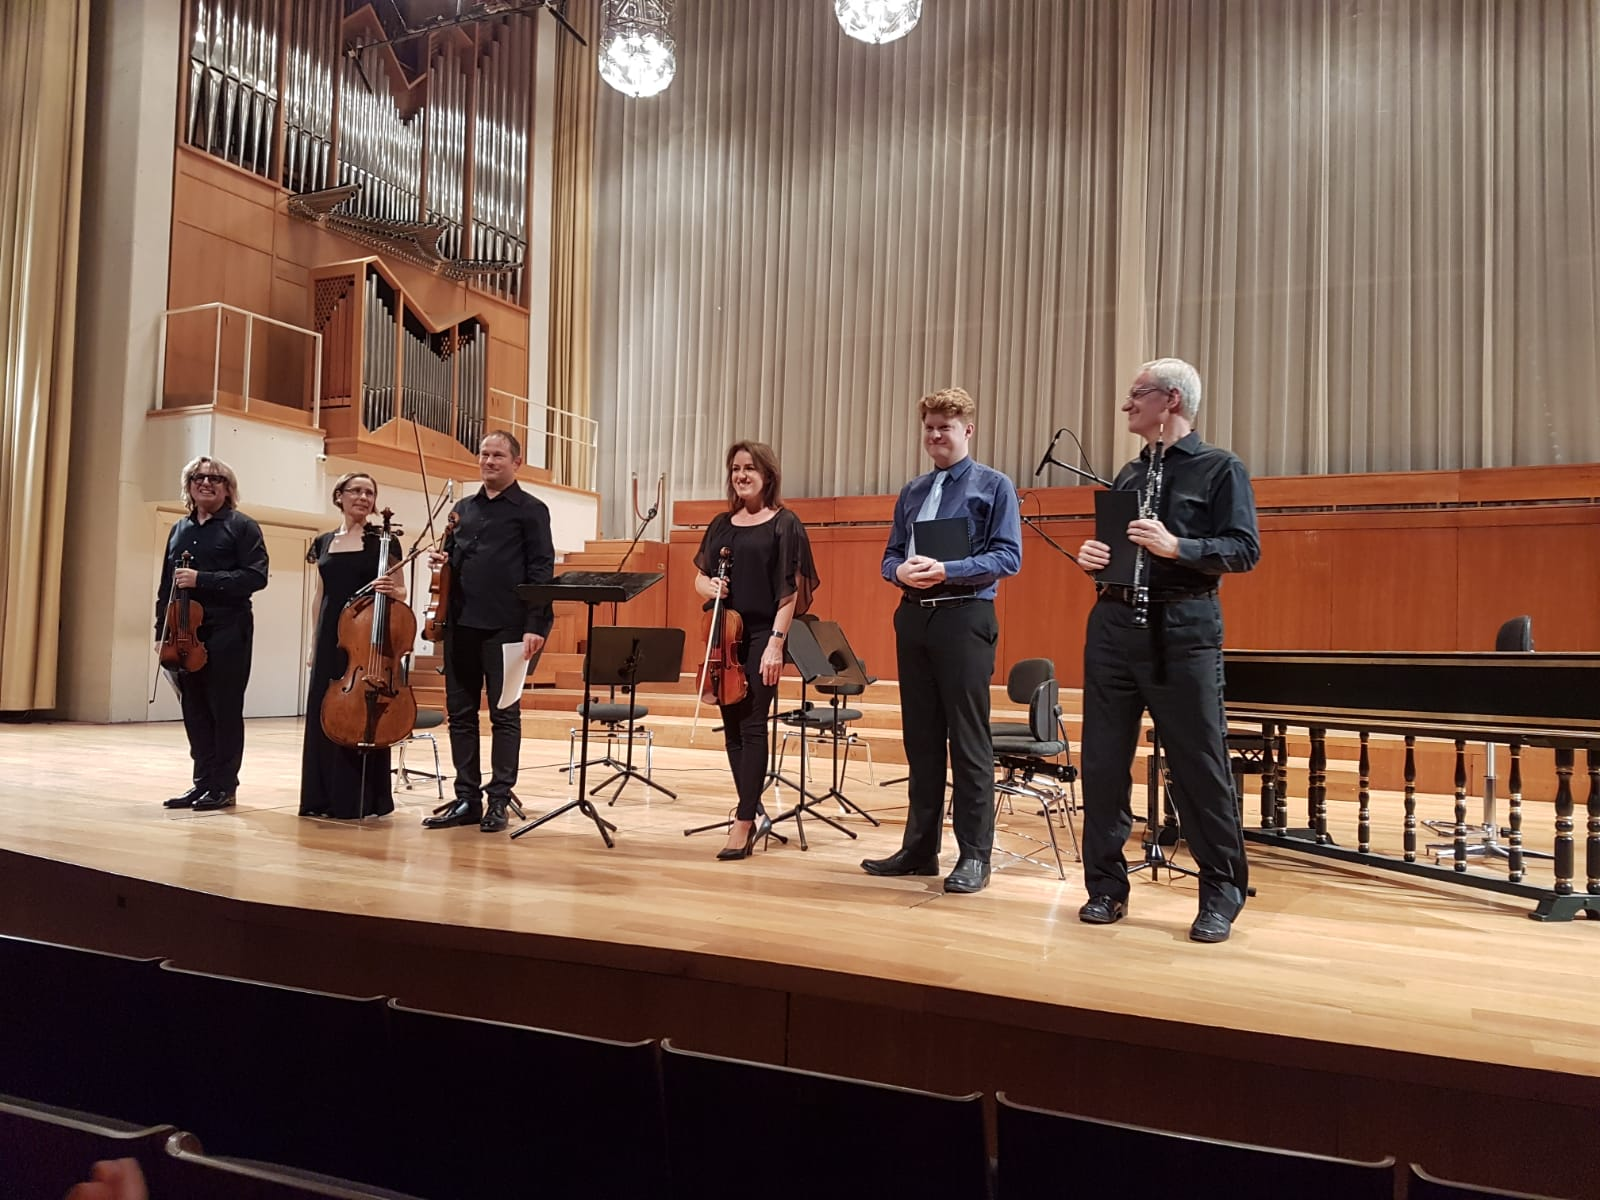 On stage with the IDRS performers - from L to R: Peter Biely (Vln I), Kathleen Balfe (Vc.) Andreas Theinert (Vln II), Hanna Nisonen, Vla, Michael Small, and Jonathan Small, Ob.